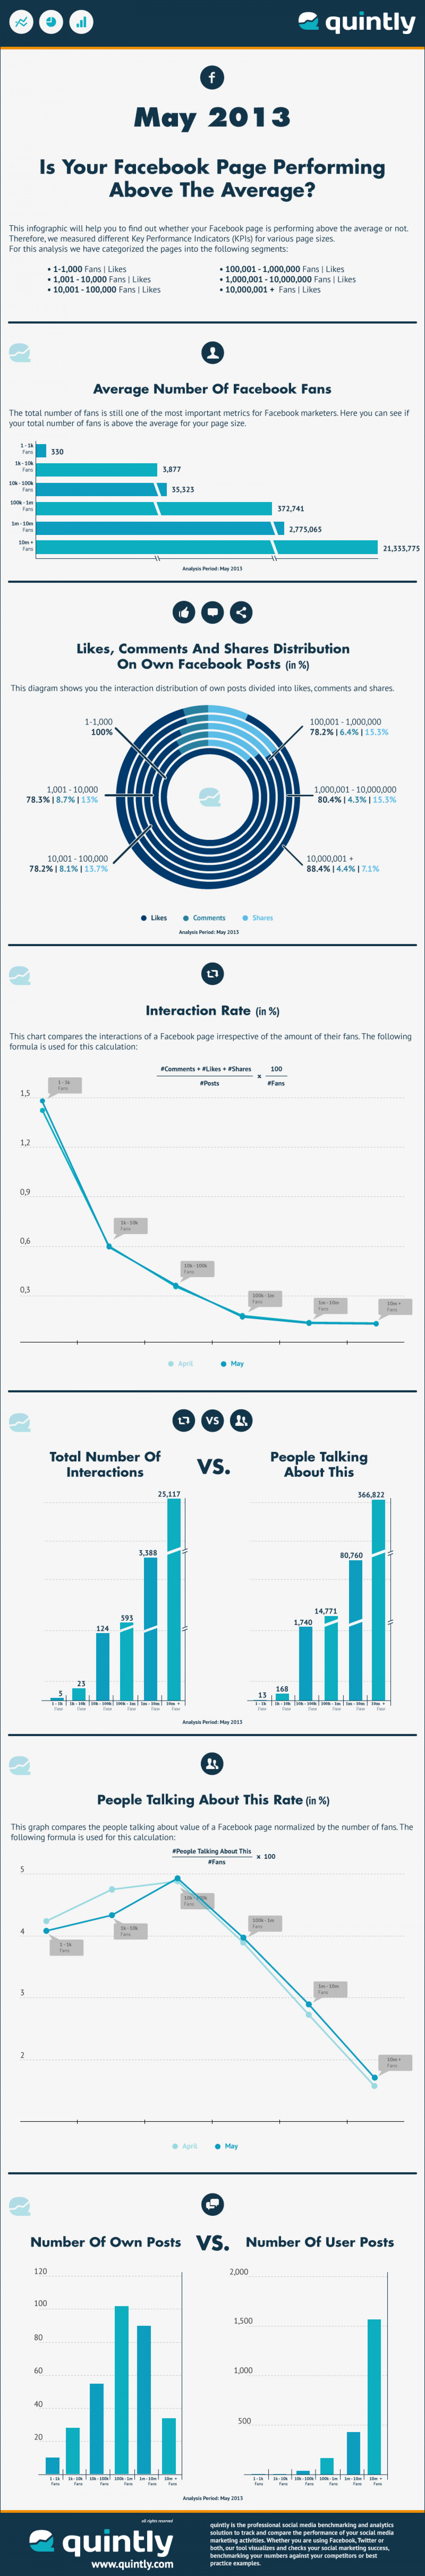 The Average Facebook Page Performance For May 2013 Infographic